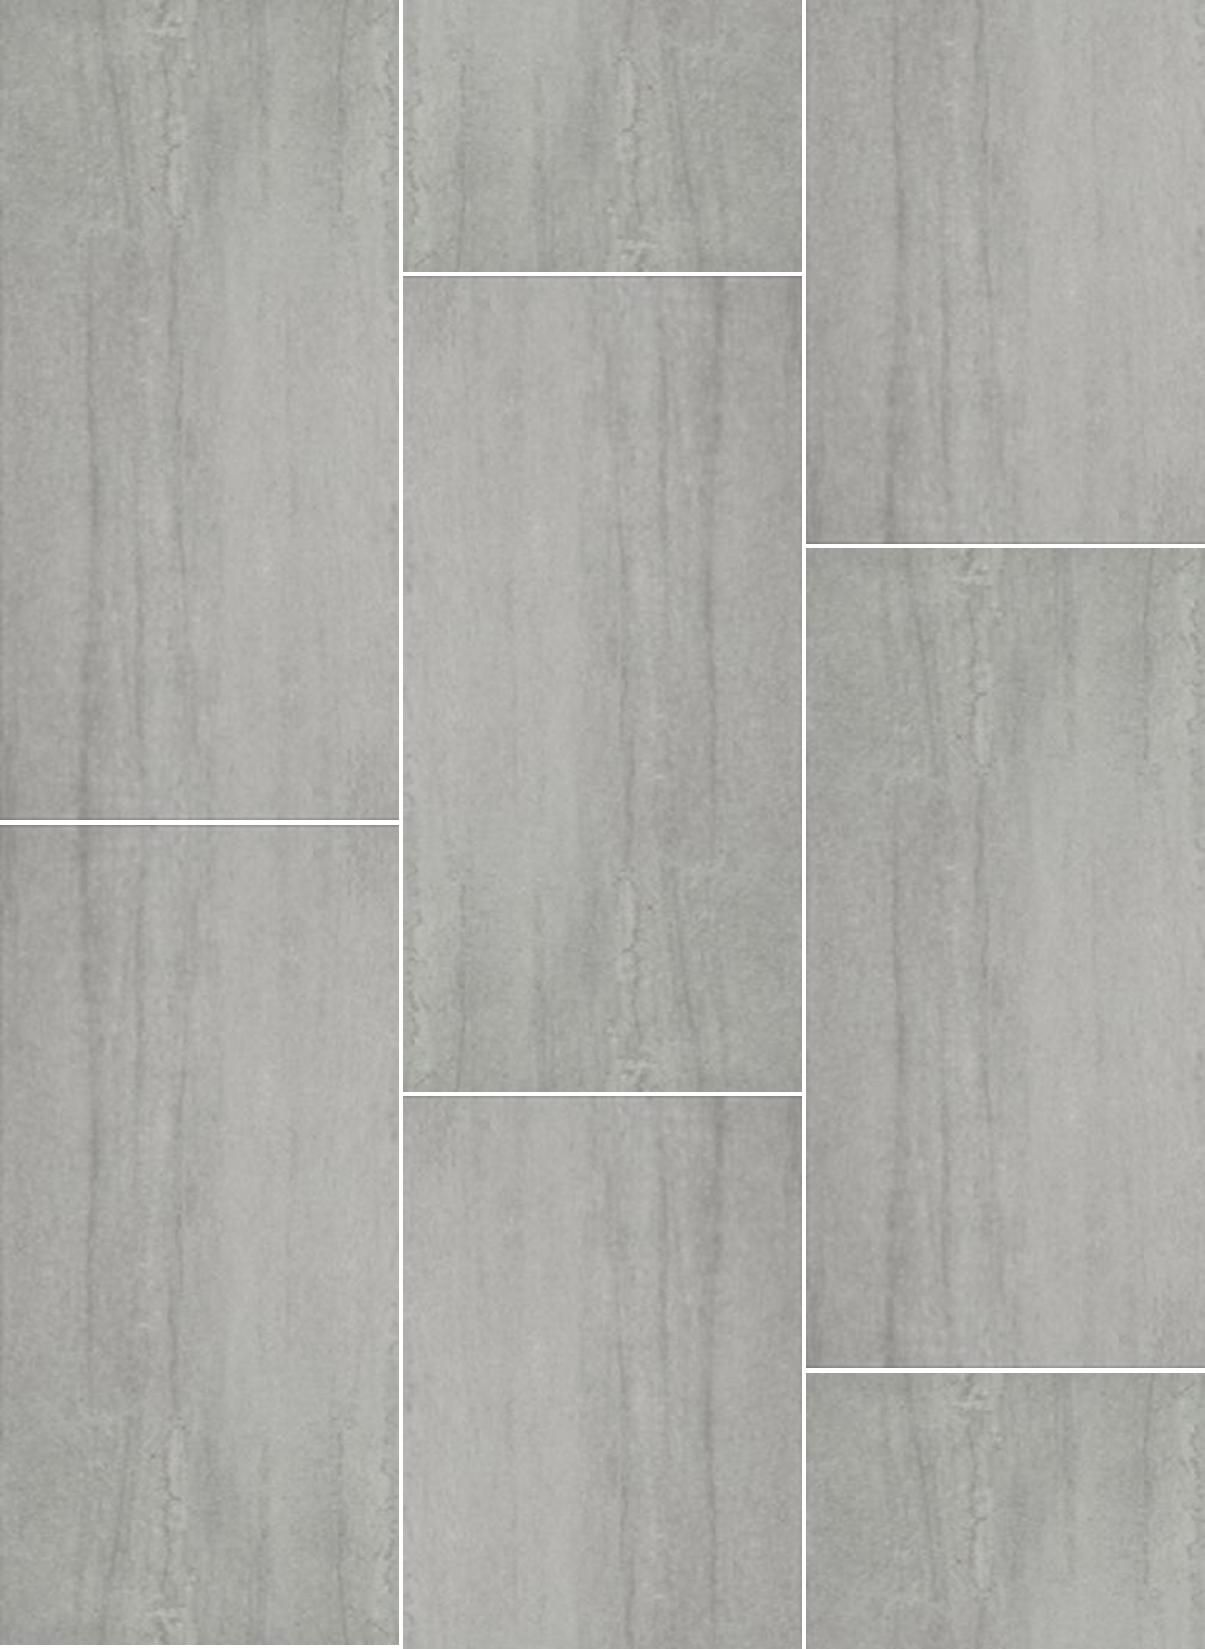 Interior Floor Tile Texture For Good Modern Ceramic Tiles Amazing